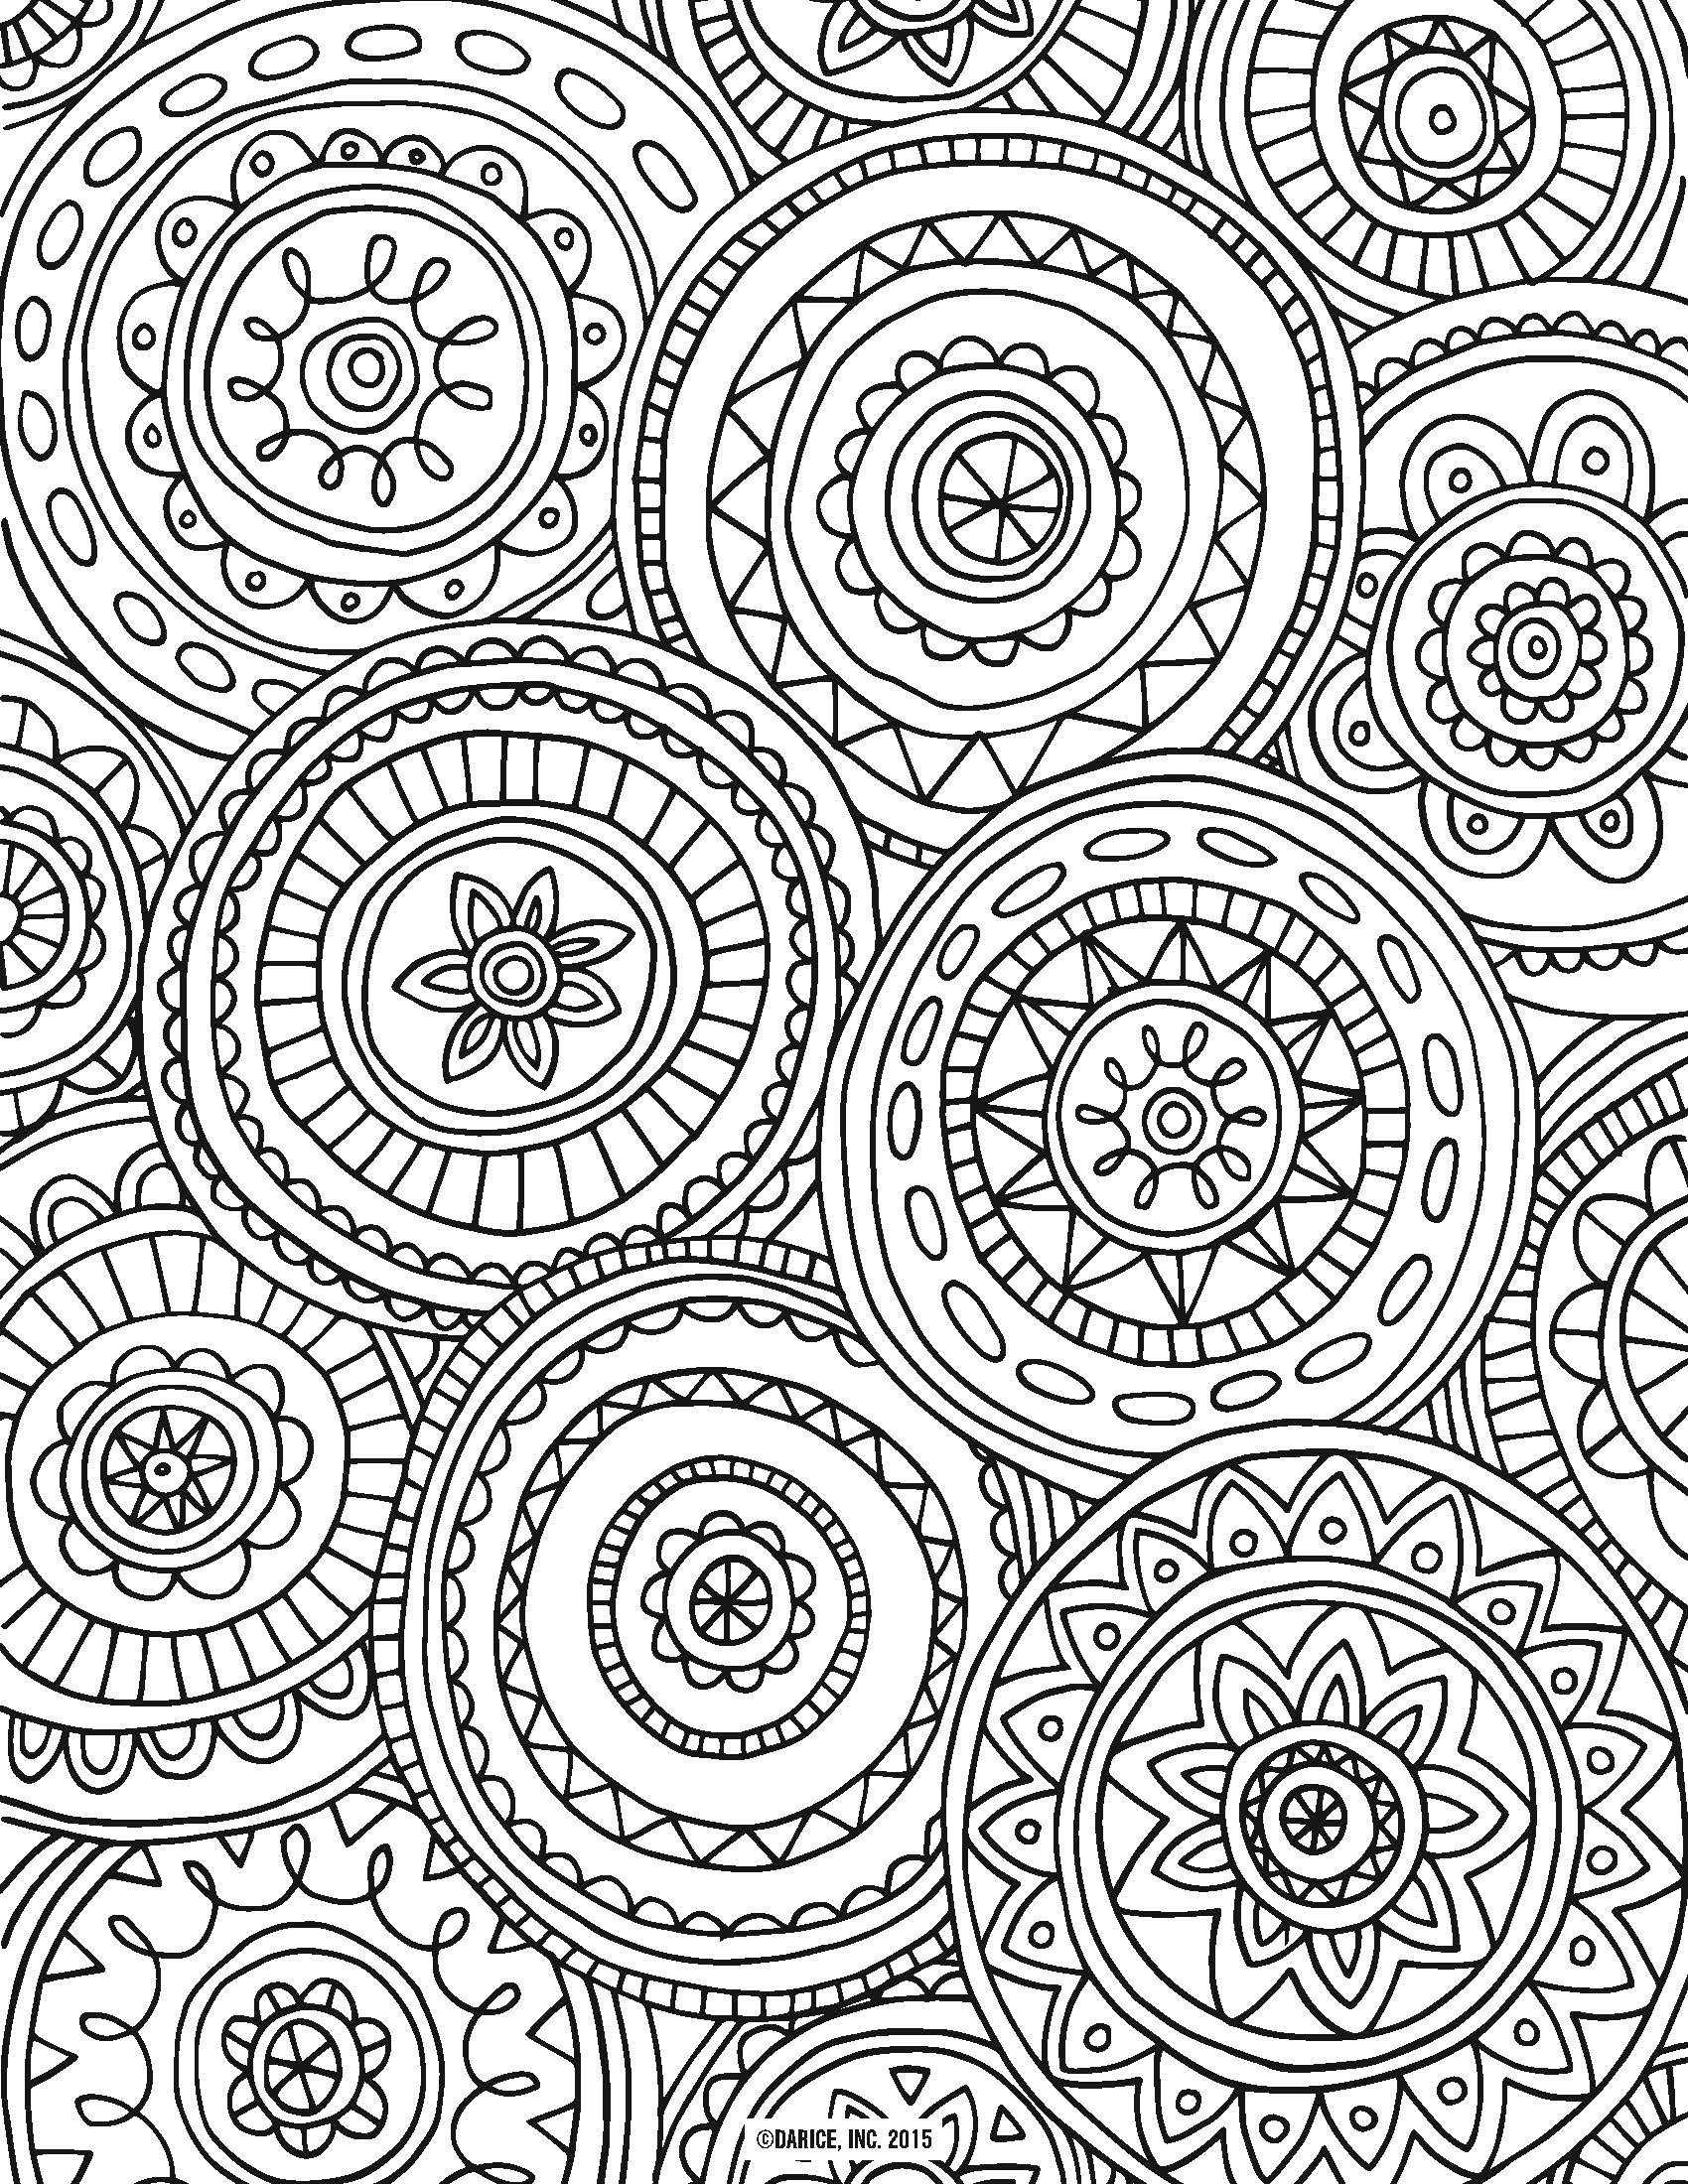 free adult coloring pages - adult coloring page